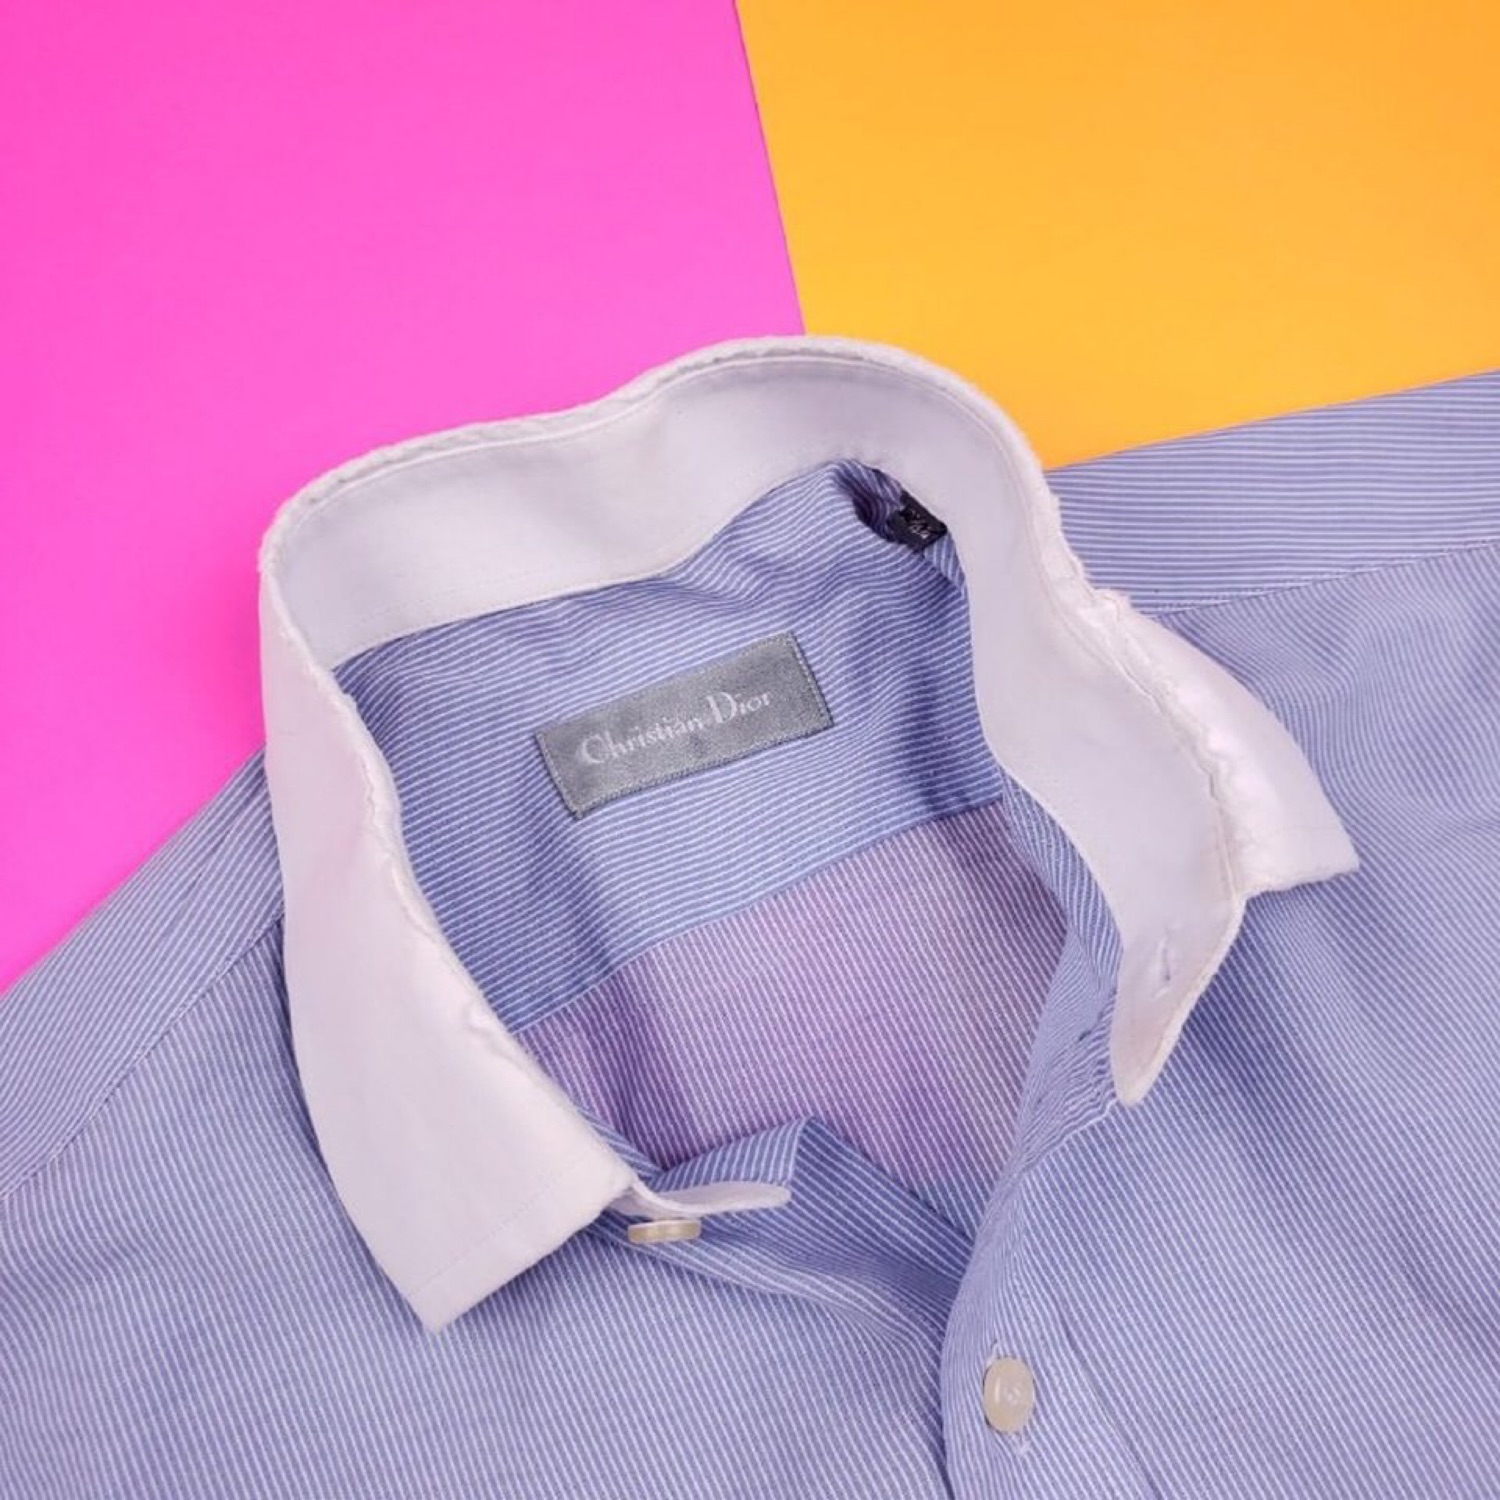 Vintage Christian Dior Striped Button Up Shirt